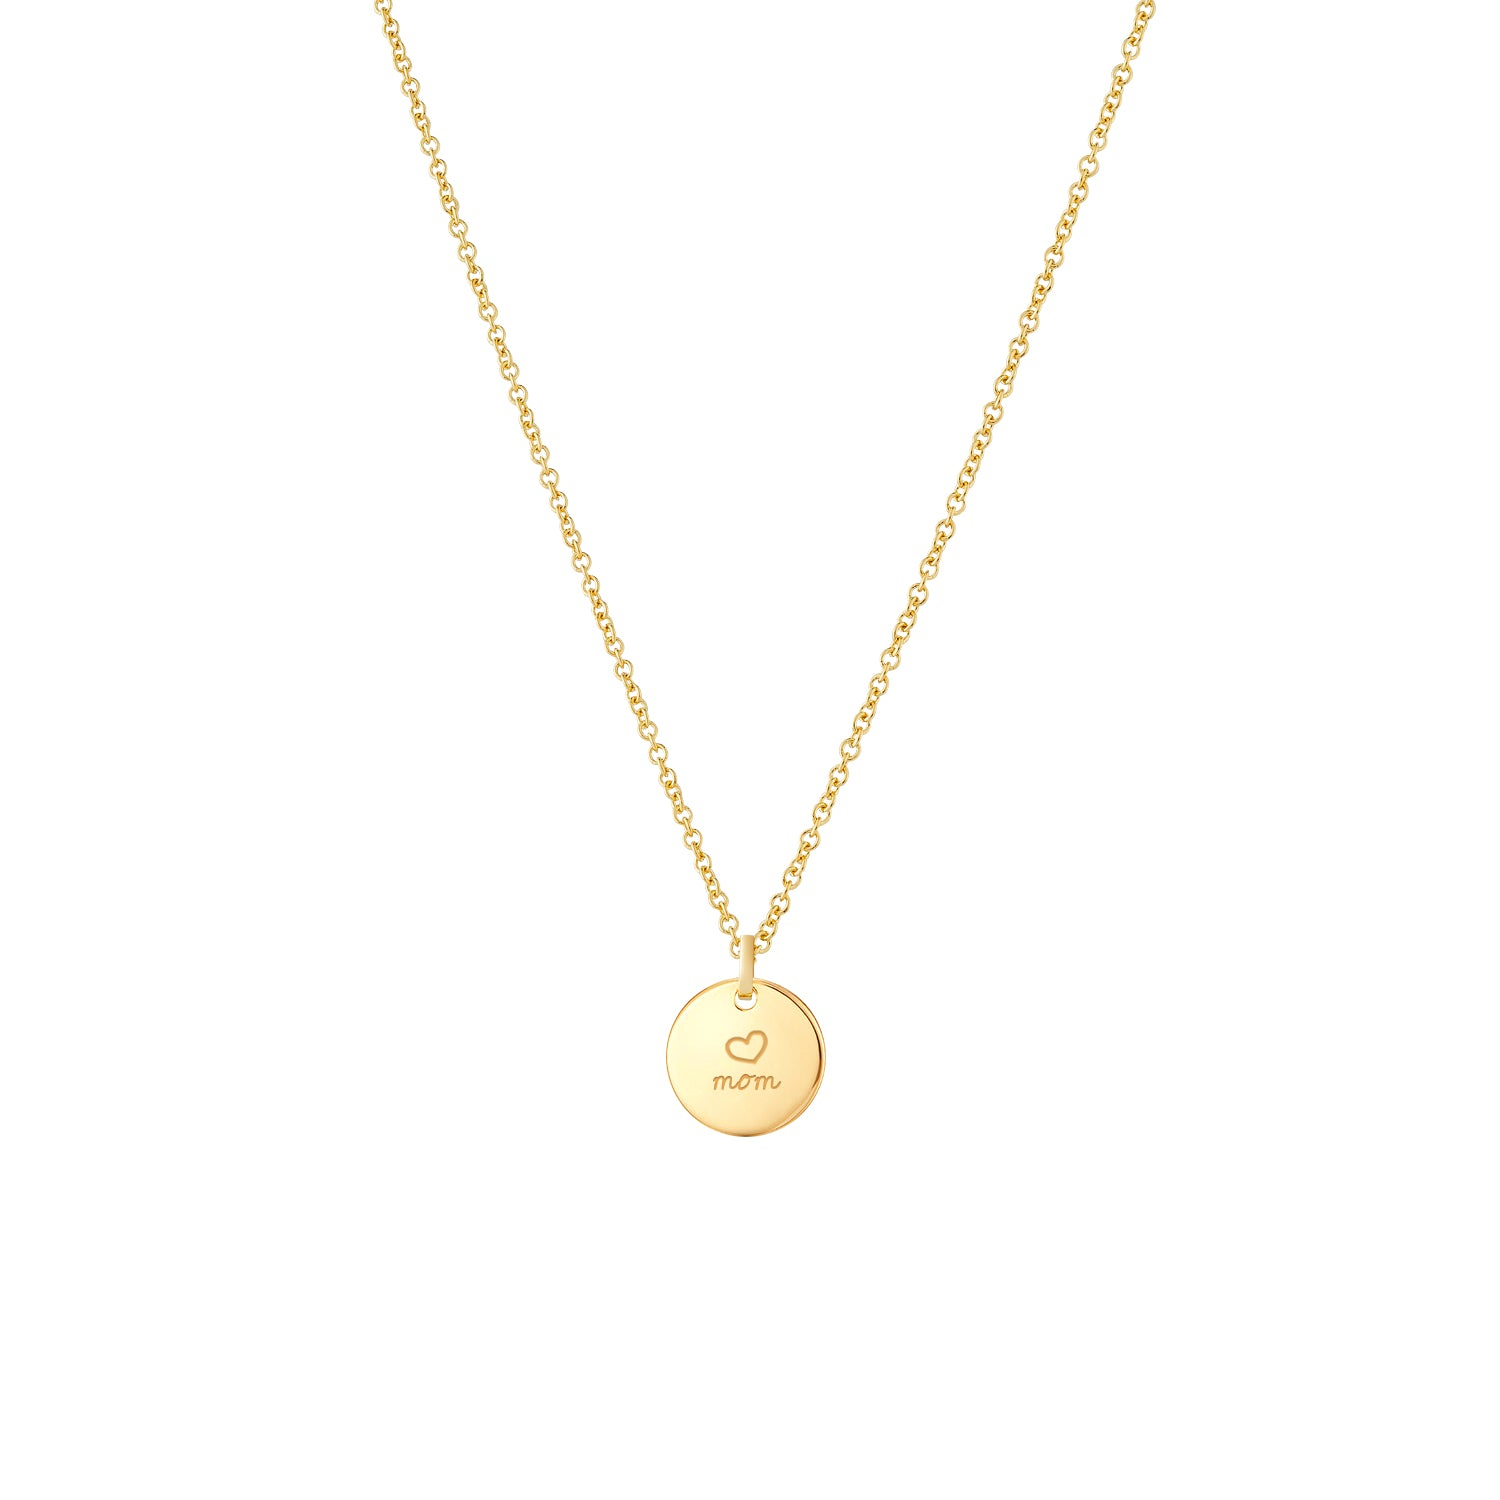 Hand Engraved 14k Gold Mothers Necklace